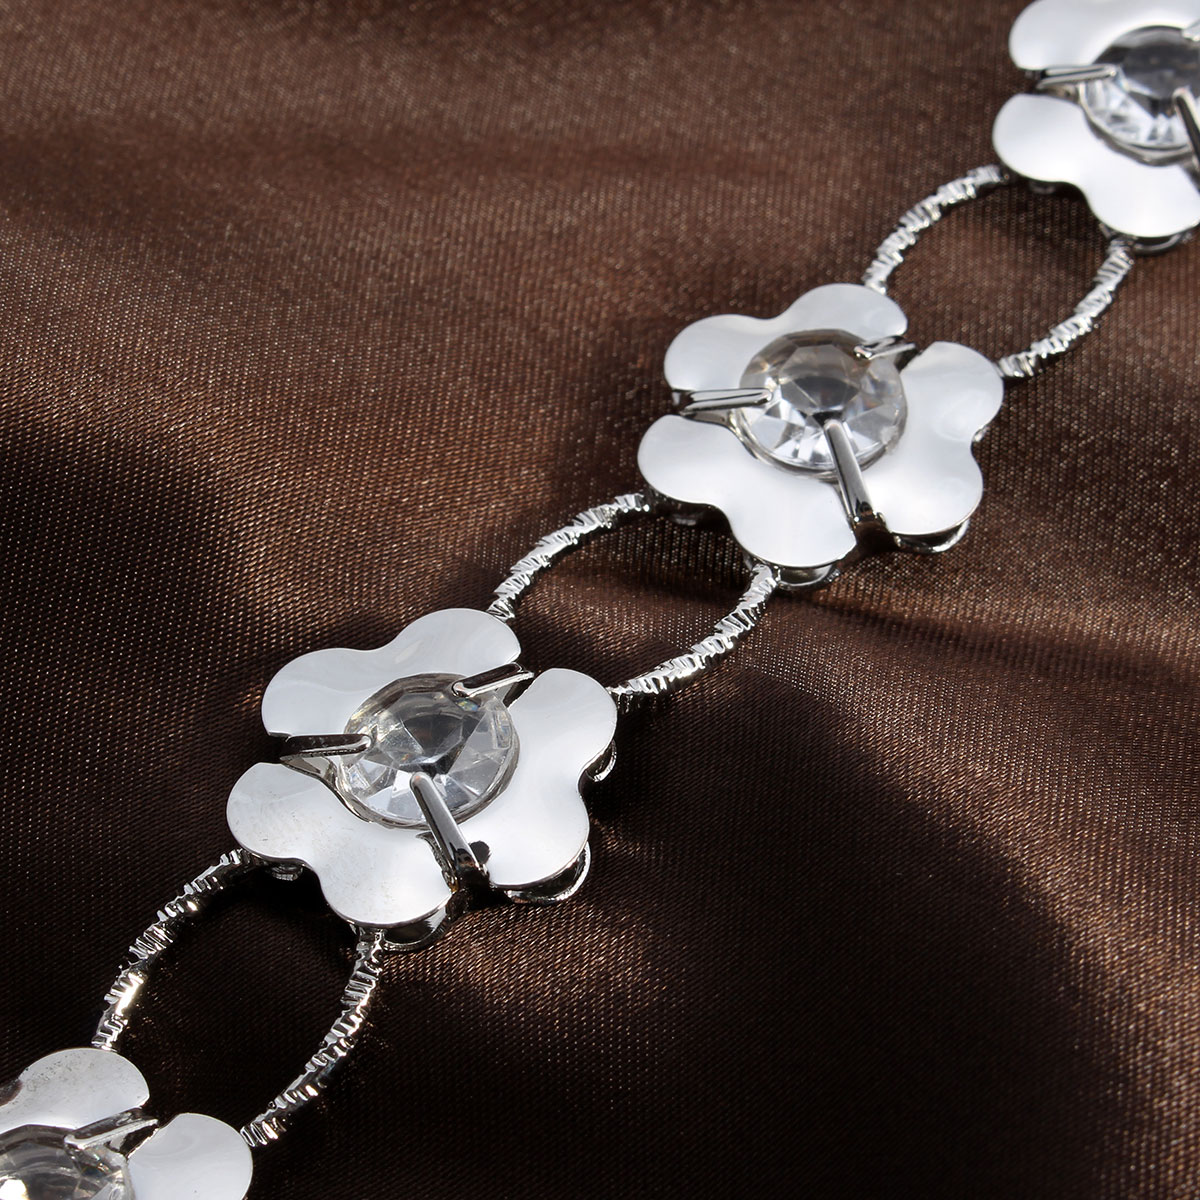 Flower Lady Waist Chain Women Silver Belt Necklace Body Jewelry